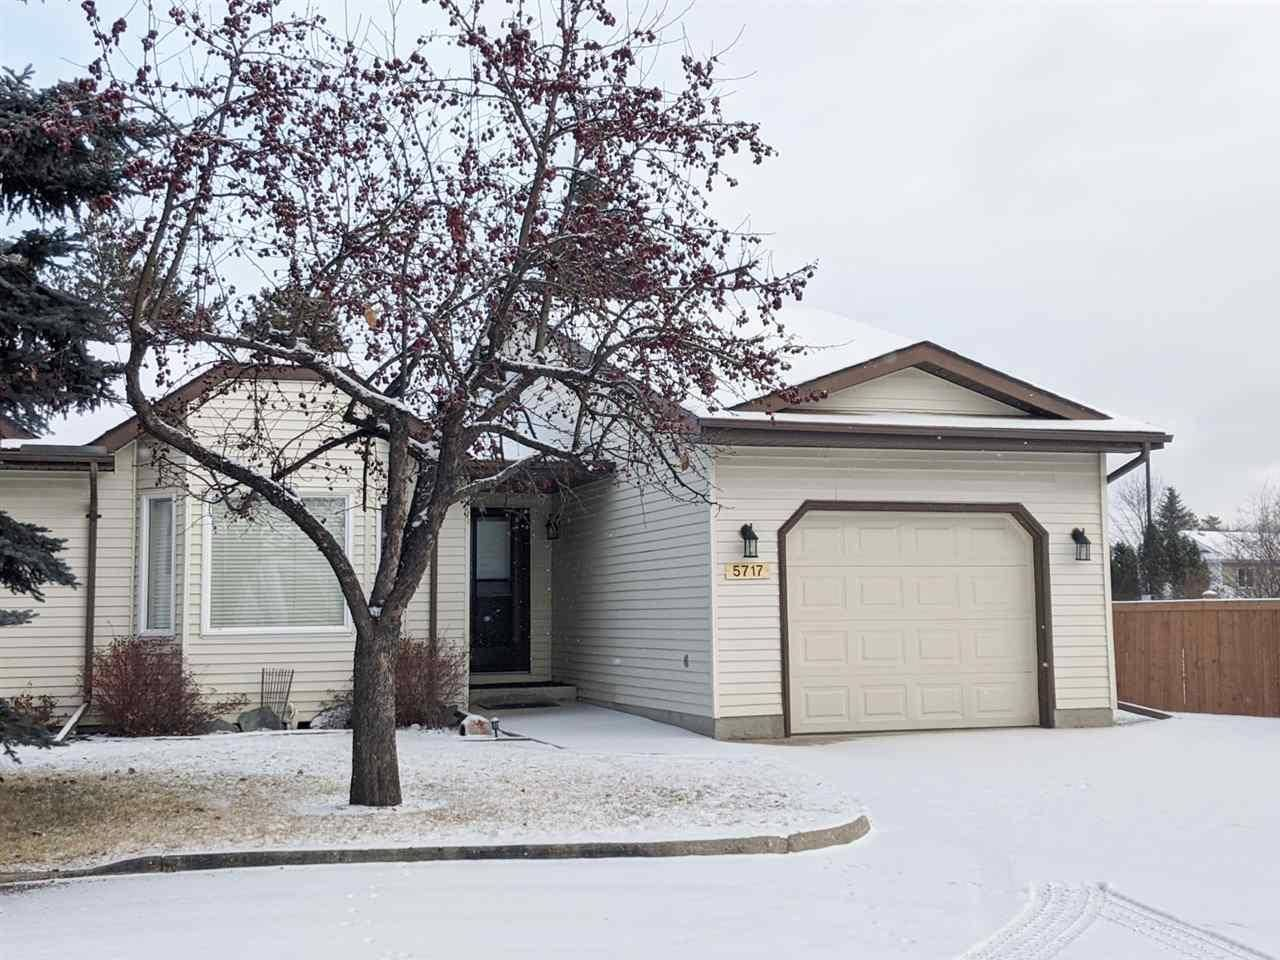 Townhouse for sale at 5717 189 St Nw Edmonton Alberta - MLS: E4178939